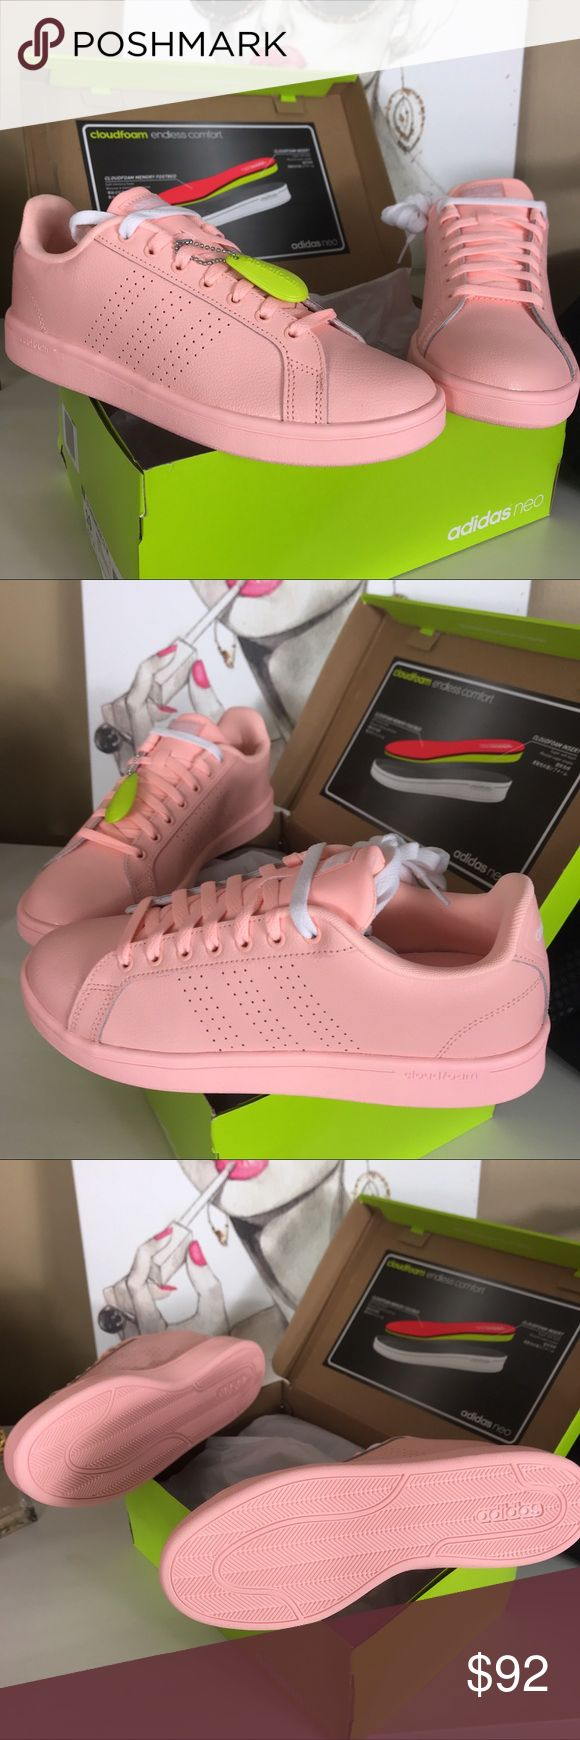 Adidas Neo Cloudfoam Advantage Sneaker - 10 Women's Adidas Neo Cloudfoam Advantage Sneaker - 10 - hot!! For spring 2018!  Grab these brand new in box - I bought two and keeping the other pair.  Come with box (box has cut as pictured) Fair offers are encouraged!! adidas Shoes Sneakers